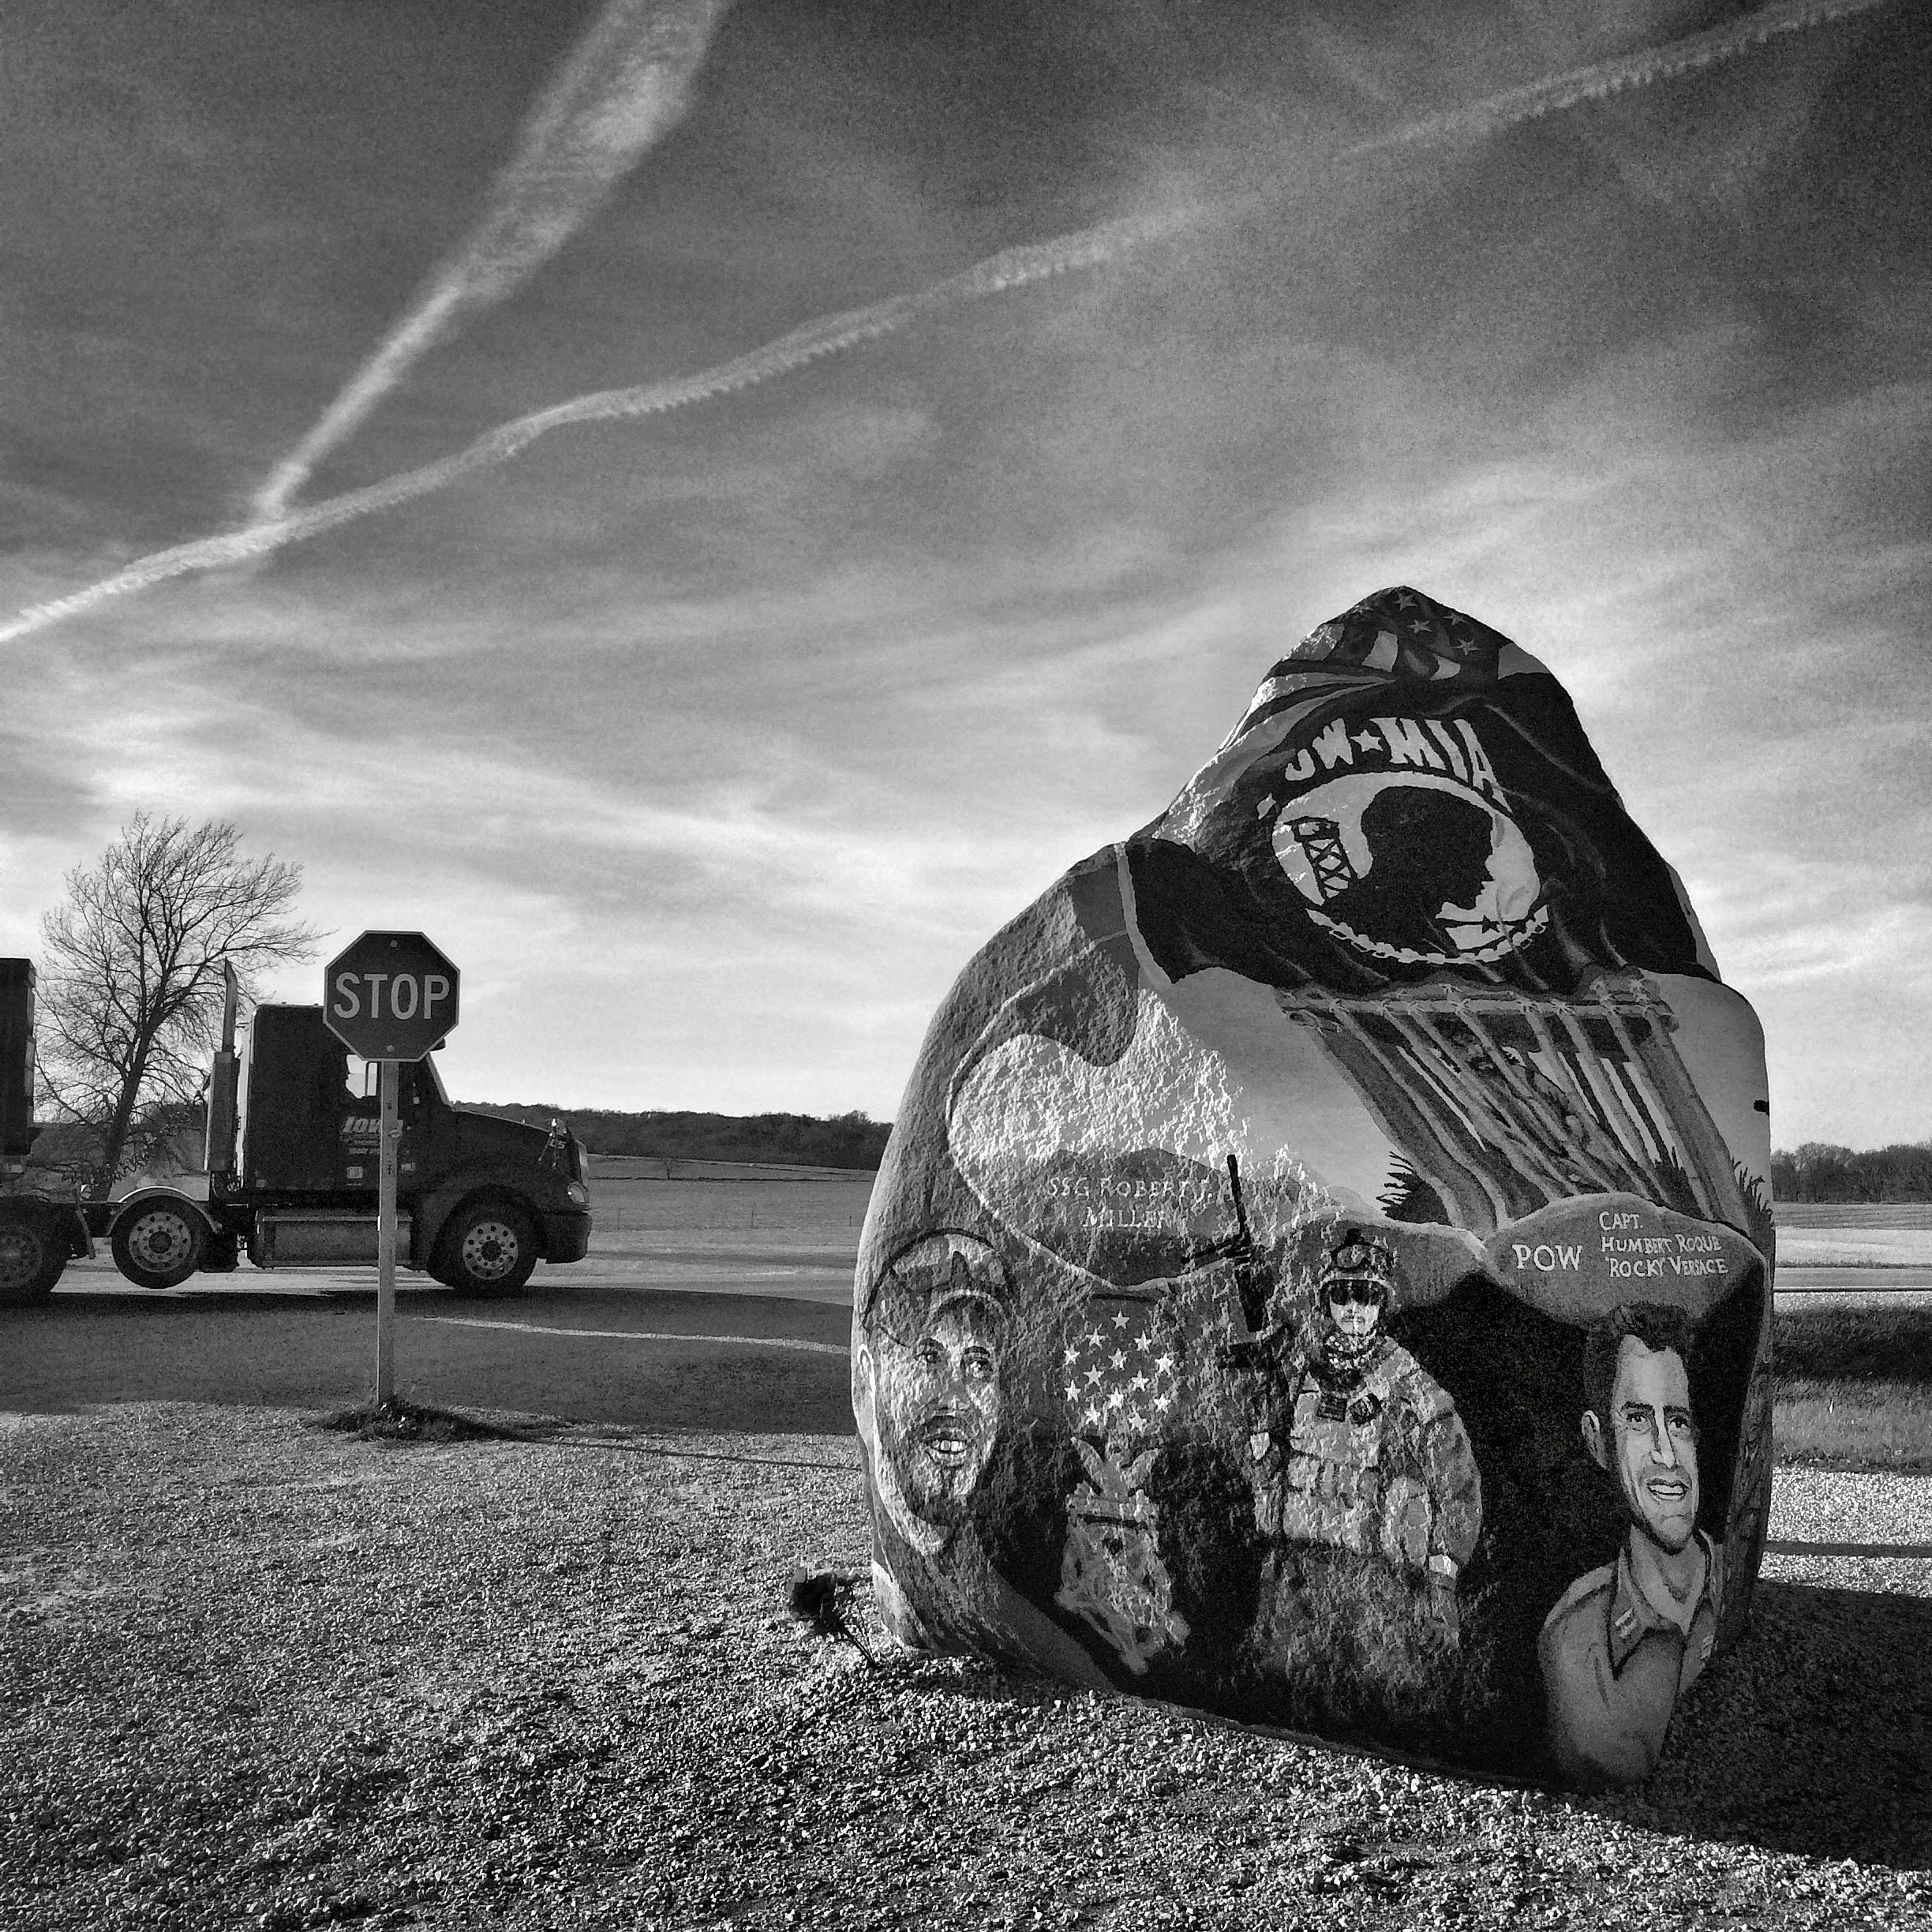 The  Freedom Rock  sits along a county road between Menlo and Greenfield, Iowa just south of Interstate 35 on Nov. 2, 2014. It's repainted every year by mural artist Ray  Bubba  Sorensen II with a different memorial message and a  Thank You  dedicated to U.S. Veterans.